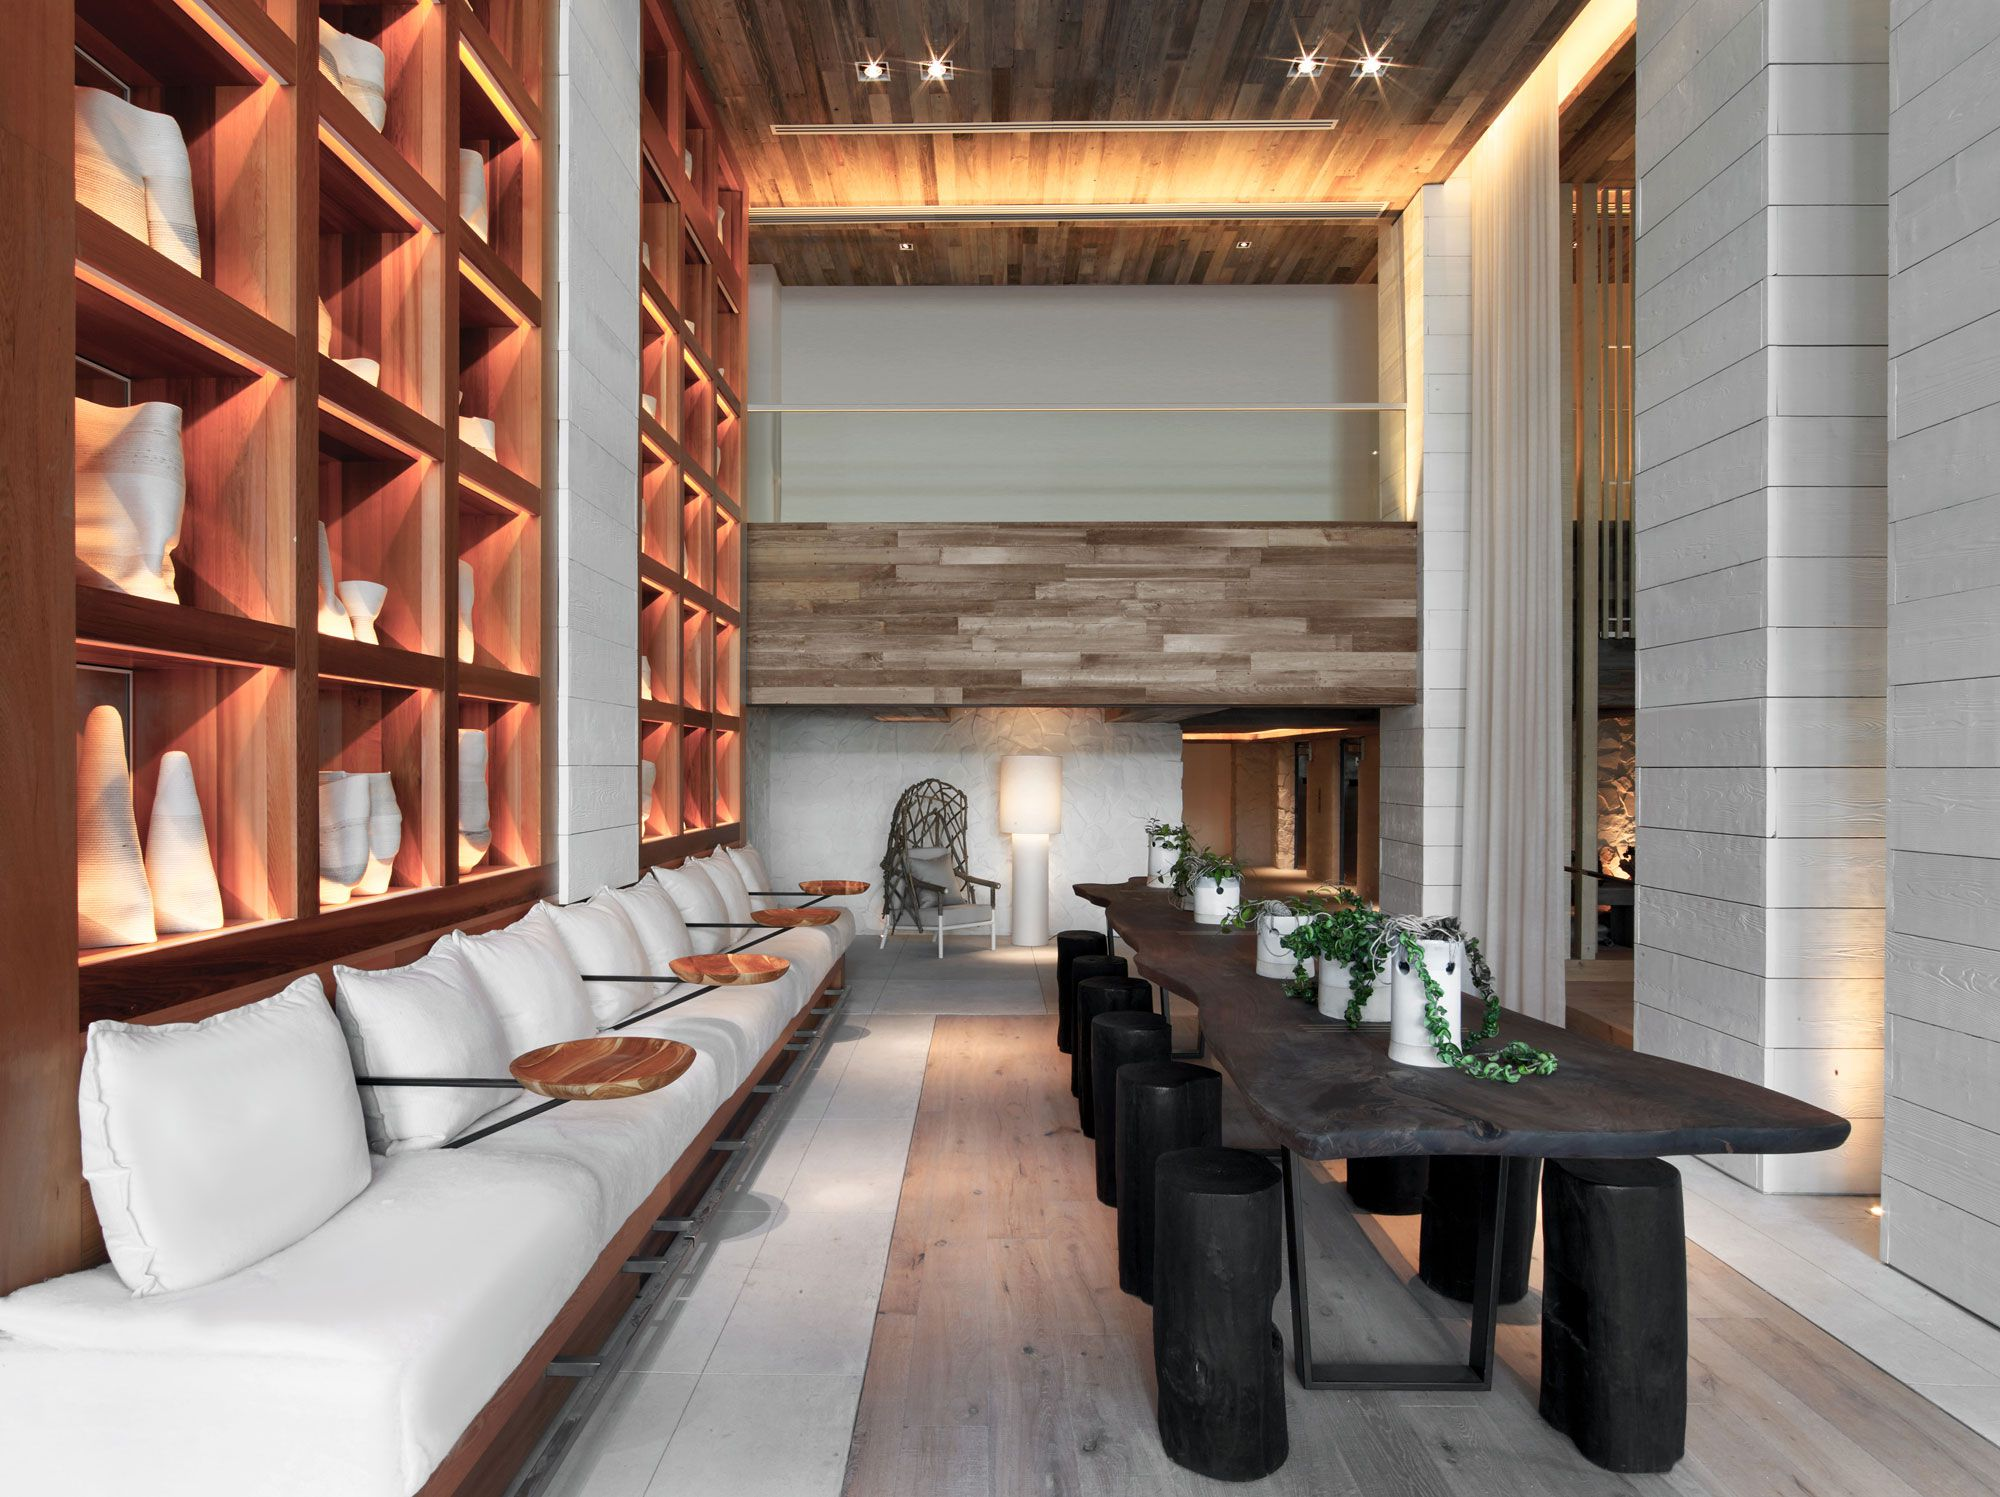 1 hotel south beachmeyer davis studio inc. - caandesign